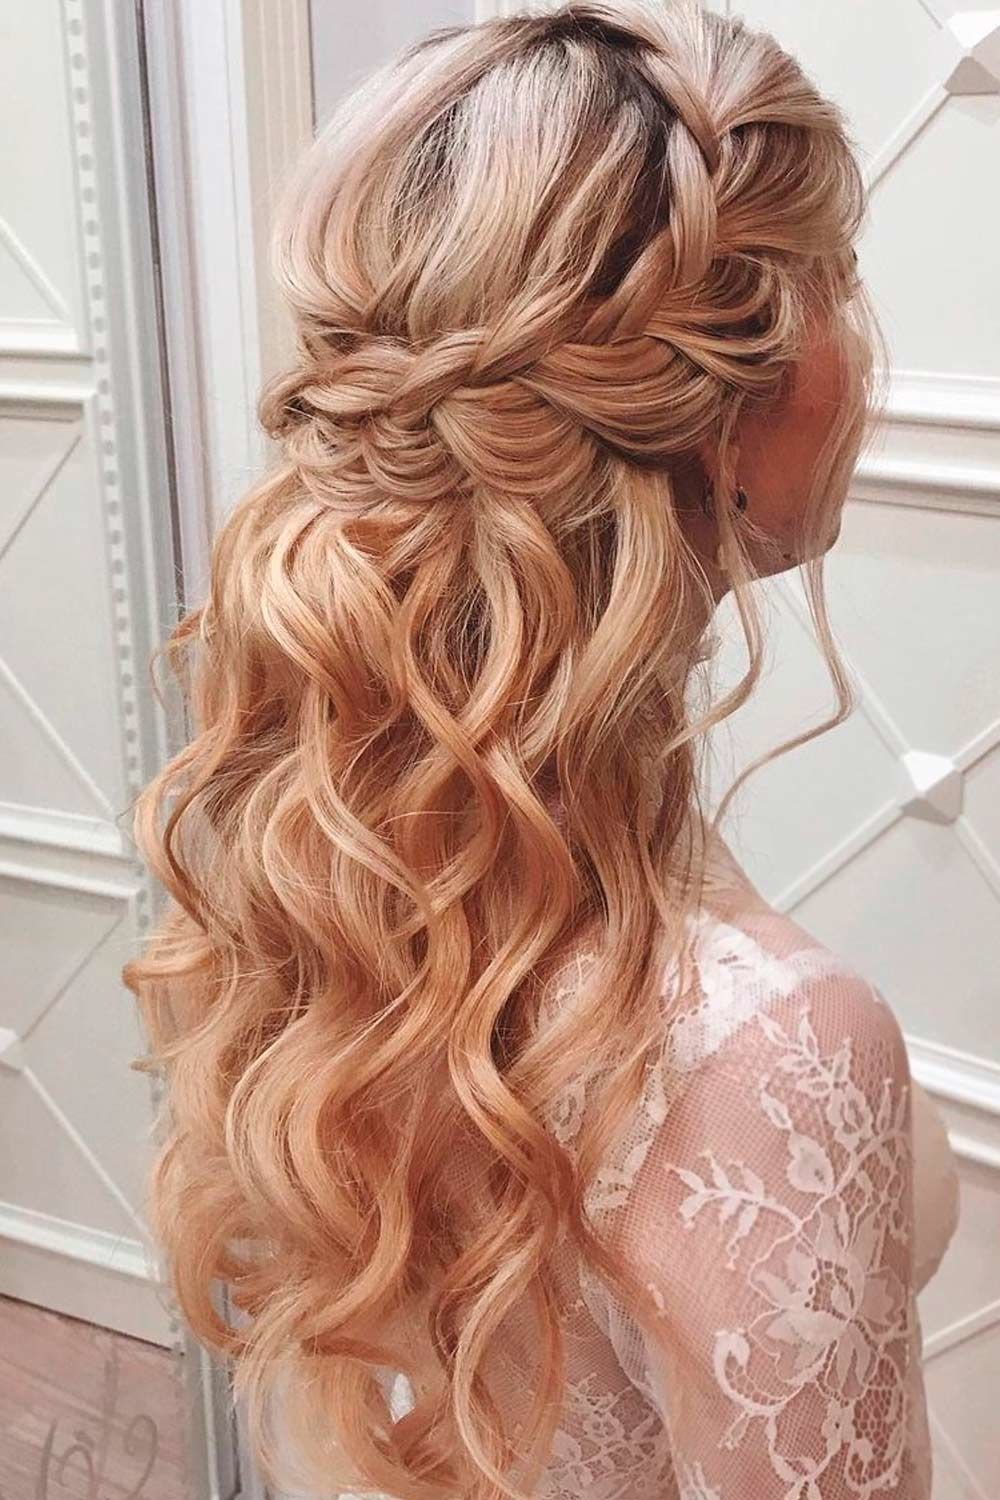 Braided Half Up Updo For Wavy Hair